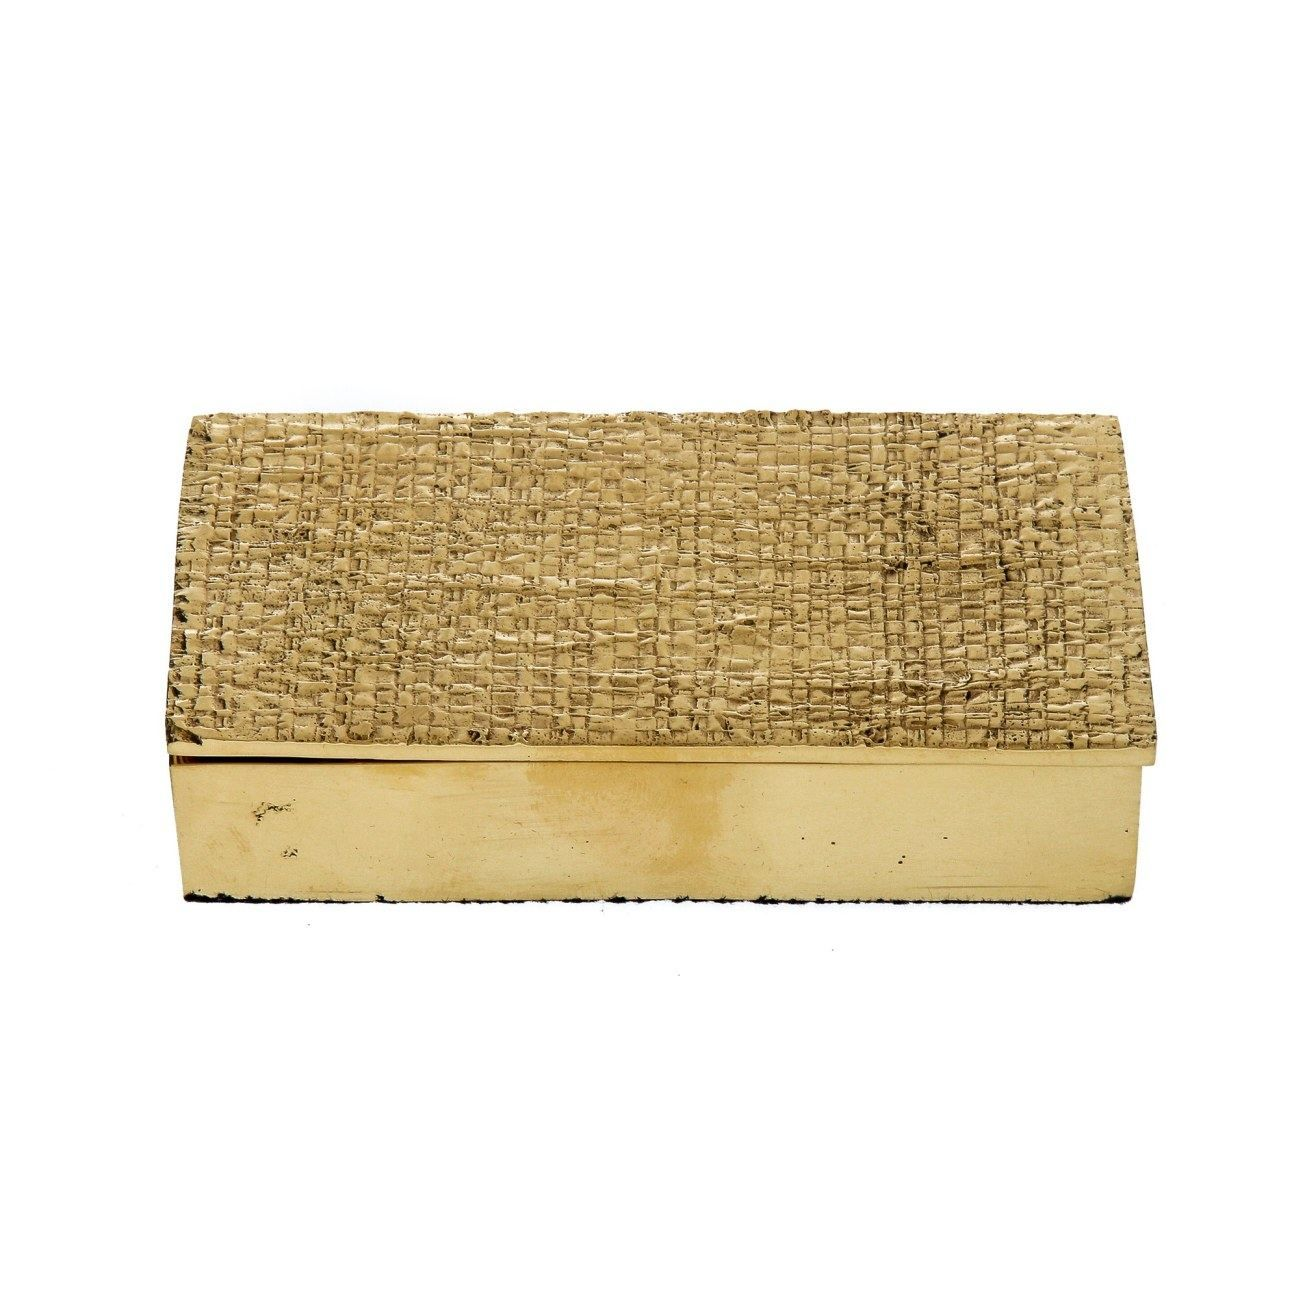 Handmade Decorative Boxes Bronze Metal Decorative Box Or Container Handmade With Textured